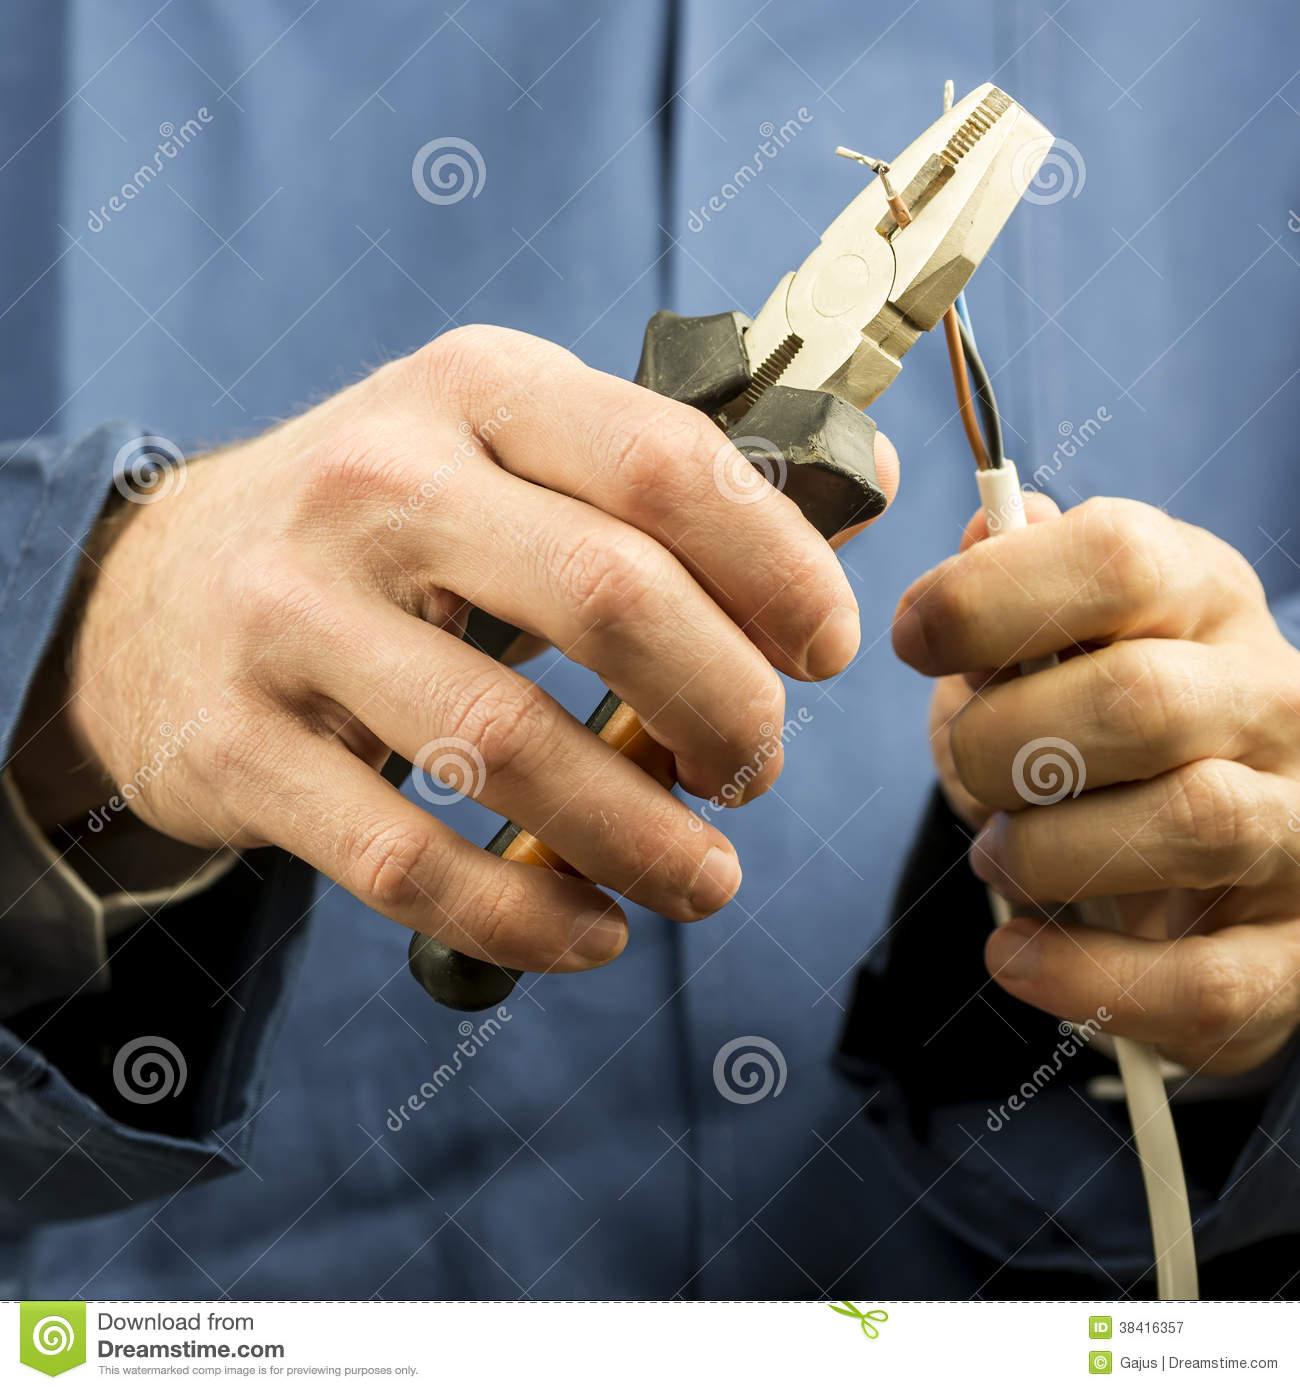 Technician Or Electrician Working With Wiring Royalty Free Stock ...